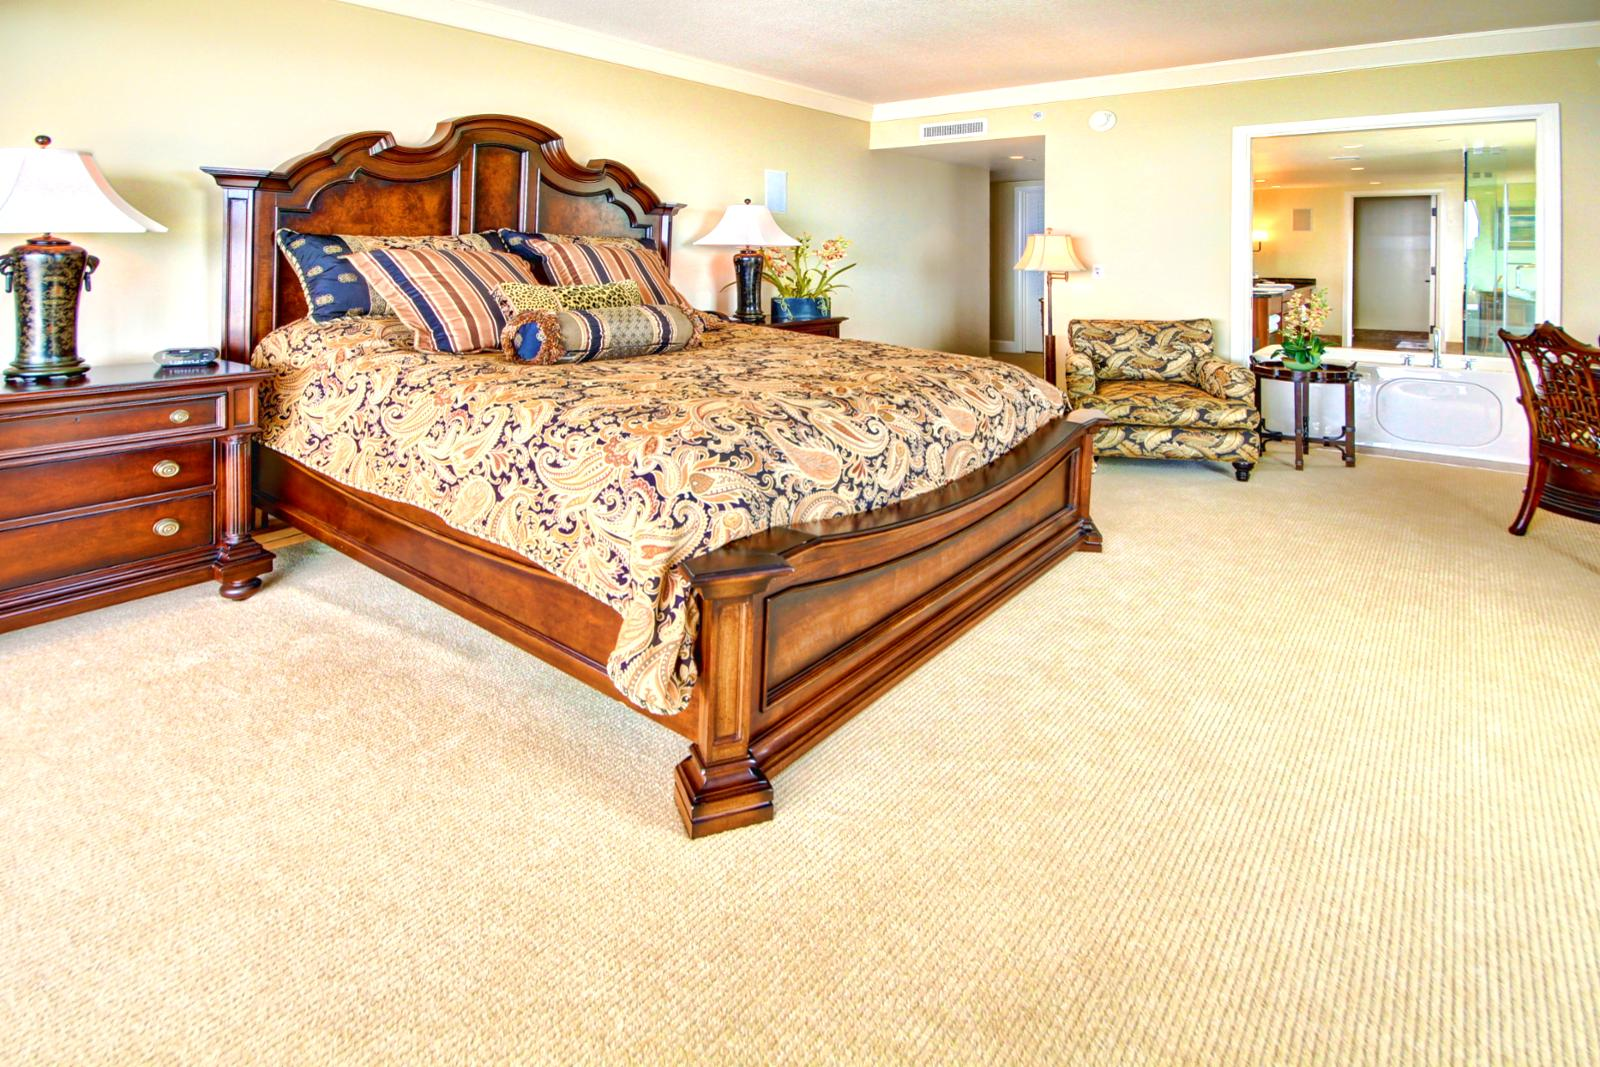 Custom furniture throughout this beautiful home. Large king size bed.